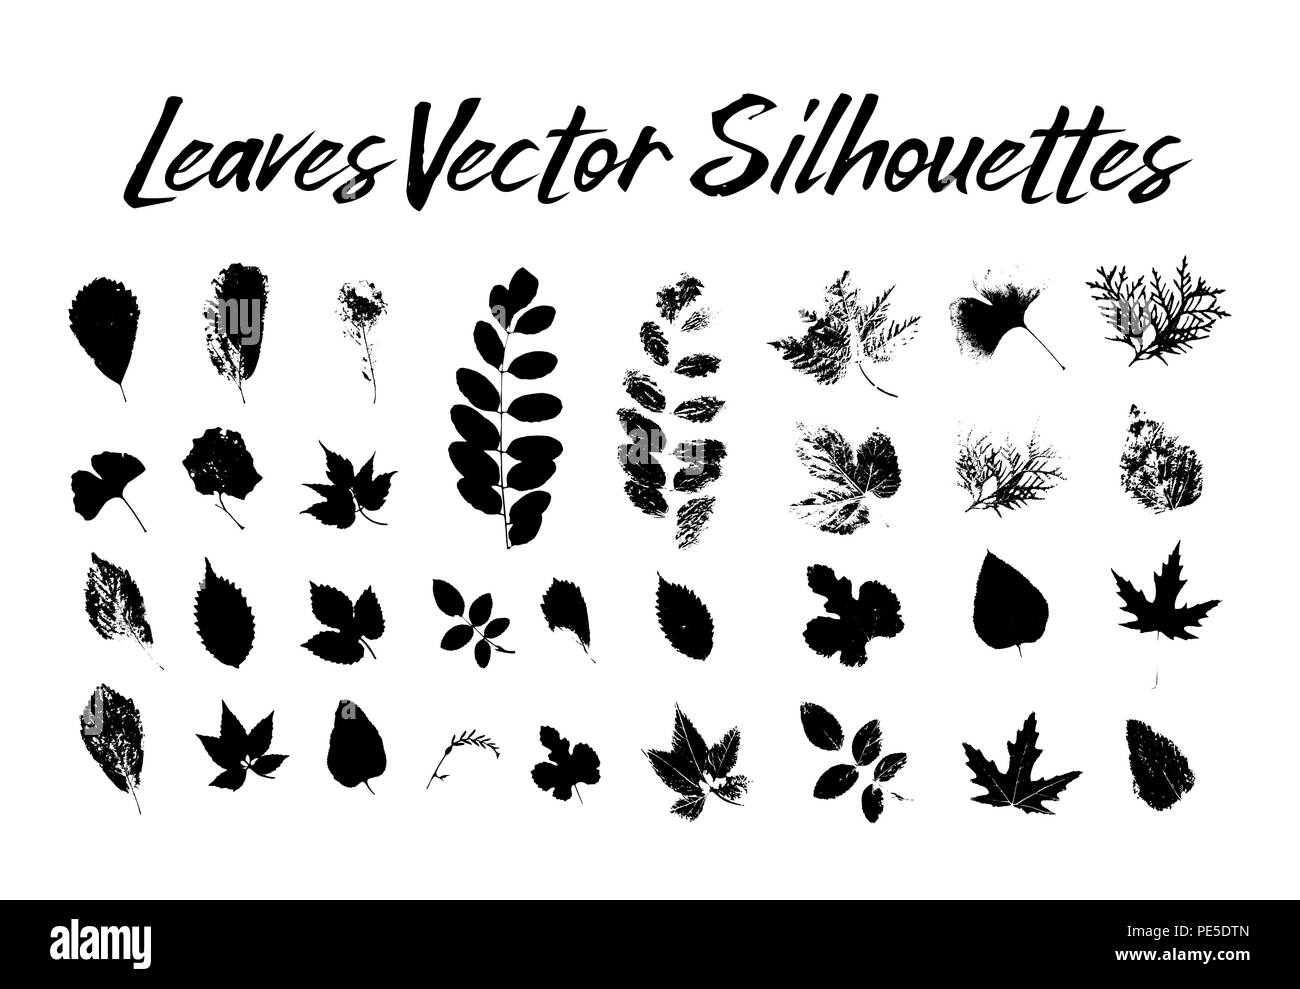 Black silhouette with leaf of rowan or sorb, ginkgo and maple, hop and thuja, aspen and birch, hornbeam and blackberry, poplar. Prints of leaves on twig or stem, branch. Flora and nature theme - Stock Vector